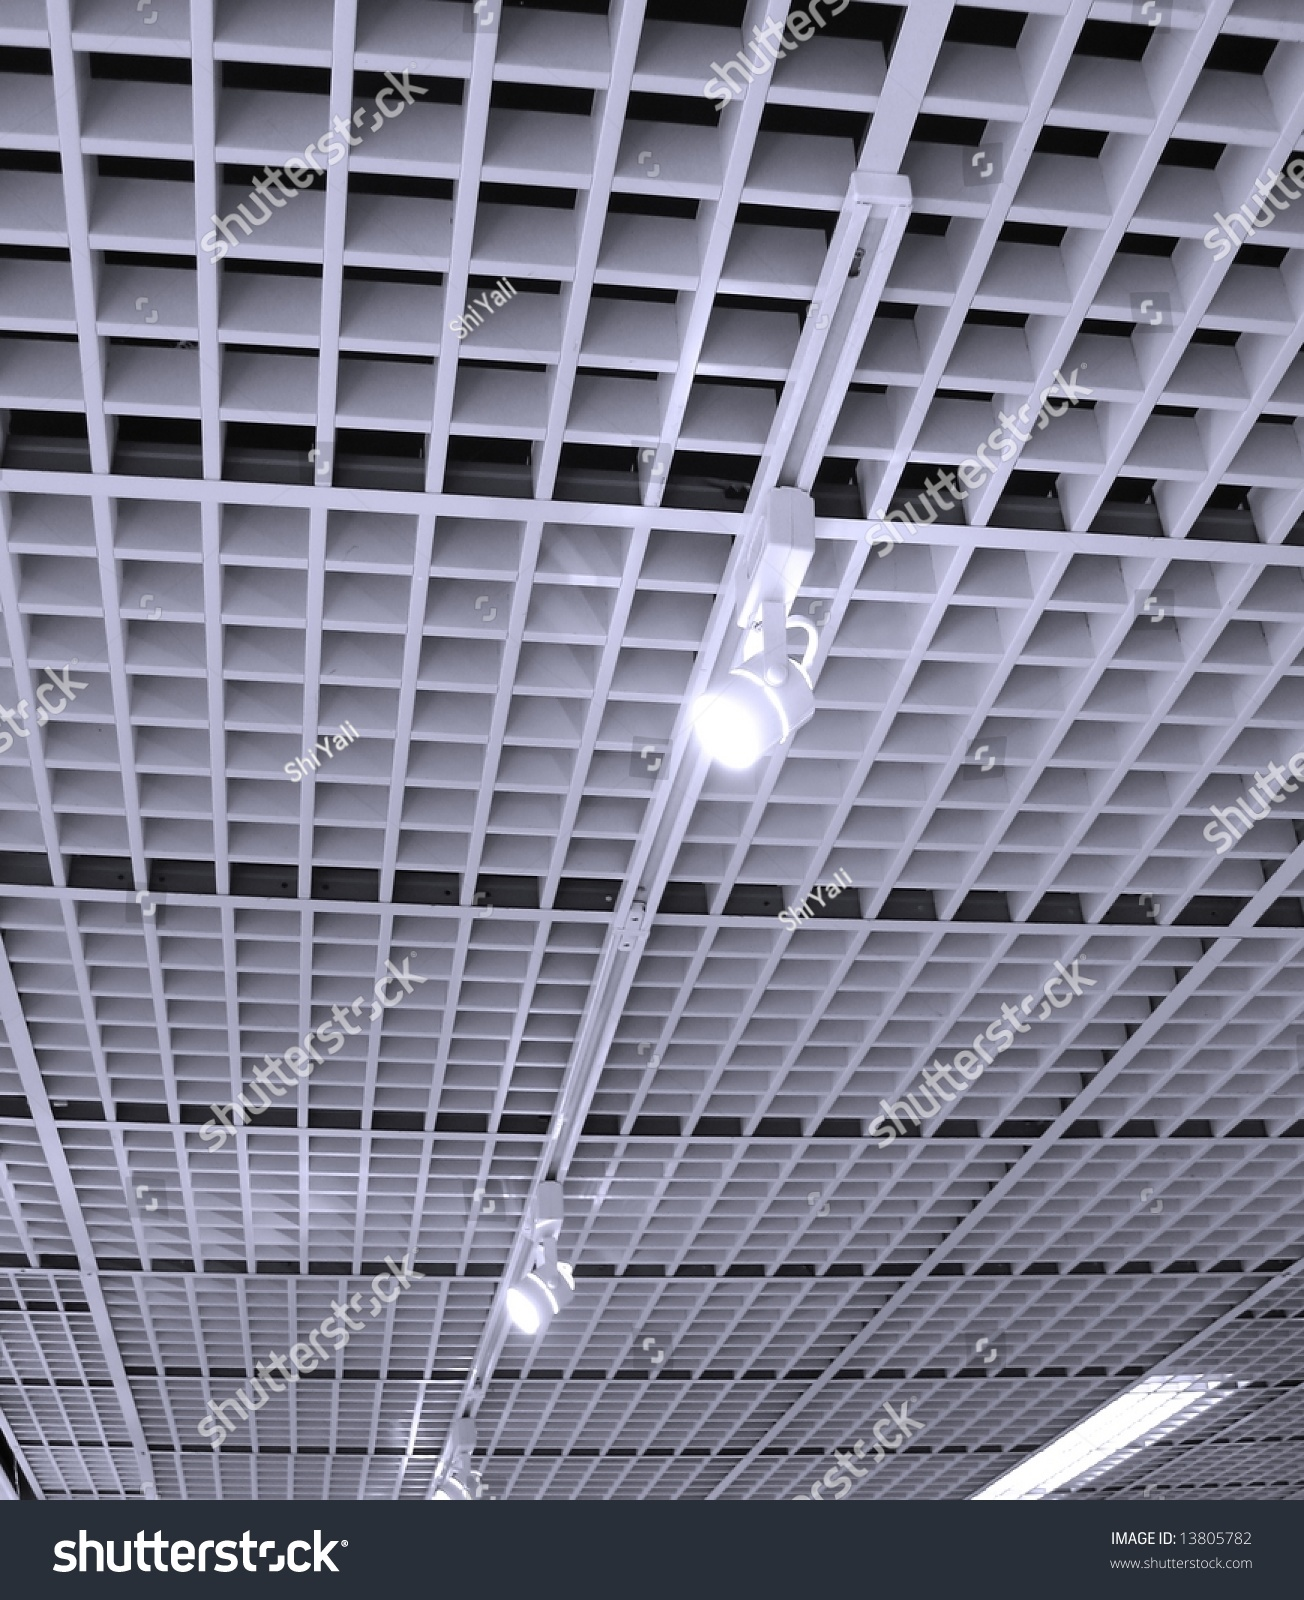 Office ceiling pattern made ceiling tiles stock photo 13805782 office ceiling pattern made up of ceiling tiles lights on rails dailygadgetfo Images